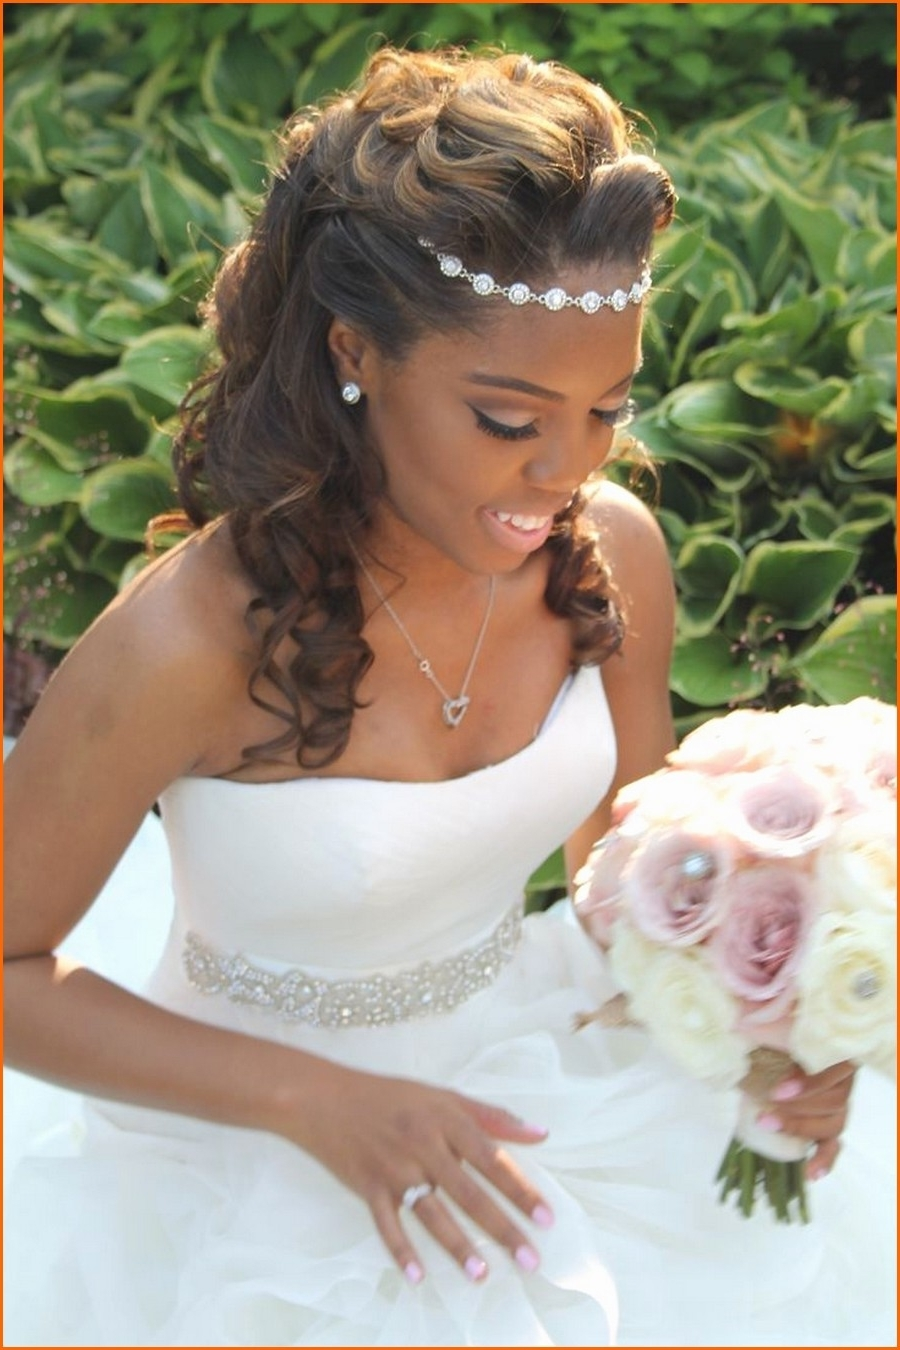 Fashionable Wedding Hairstyles For Black Girl Regarding New Wedding Hairstyles For Black Women 2018 (9) – Hairstyles, Easy (View 4 of 15)